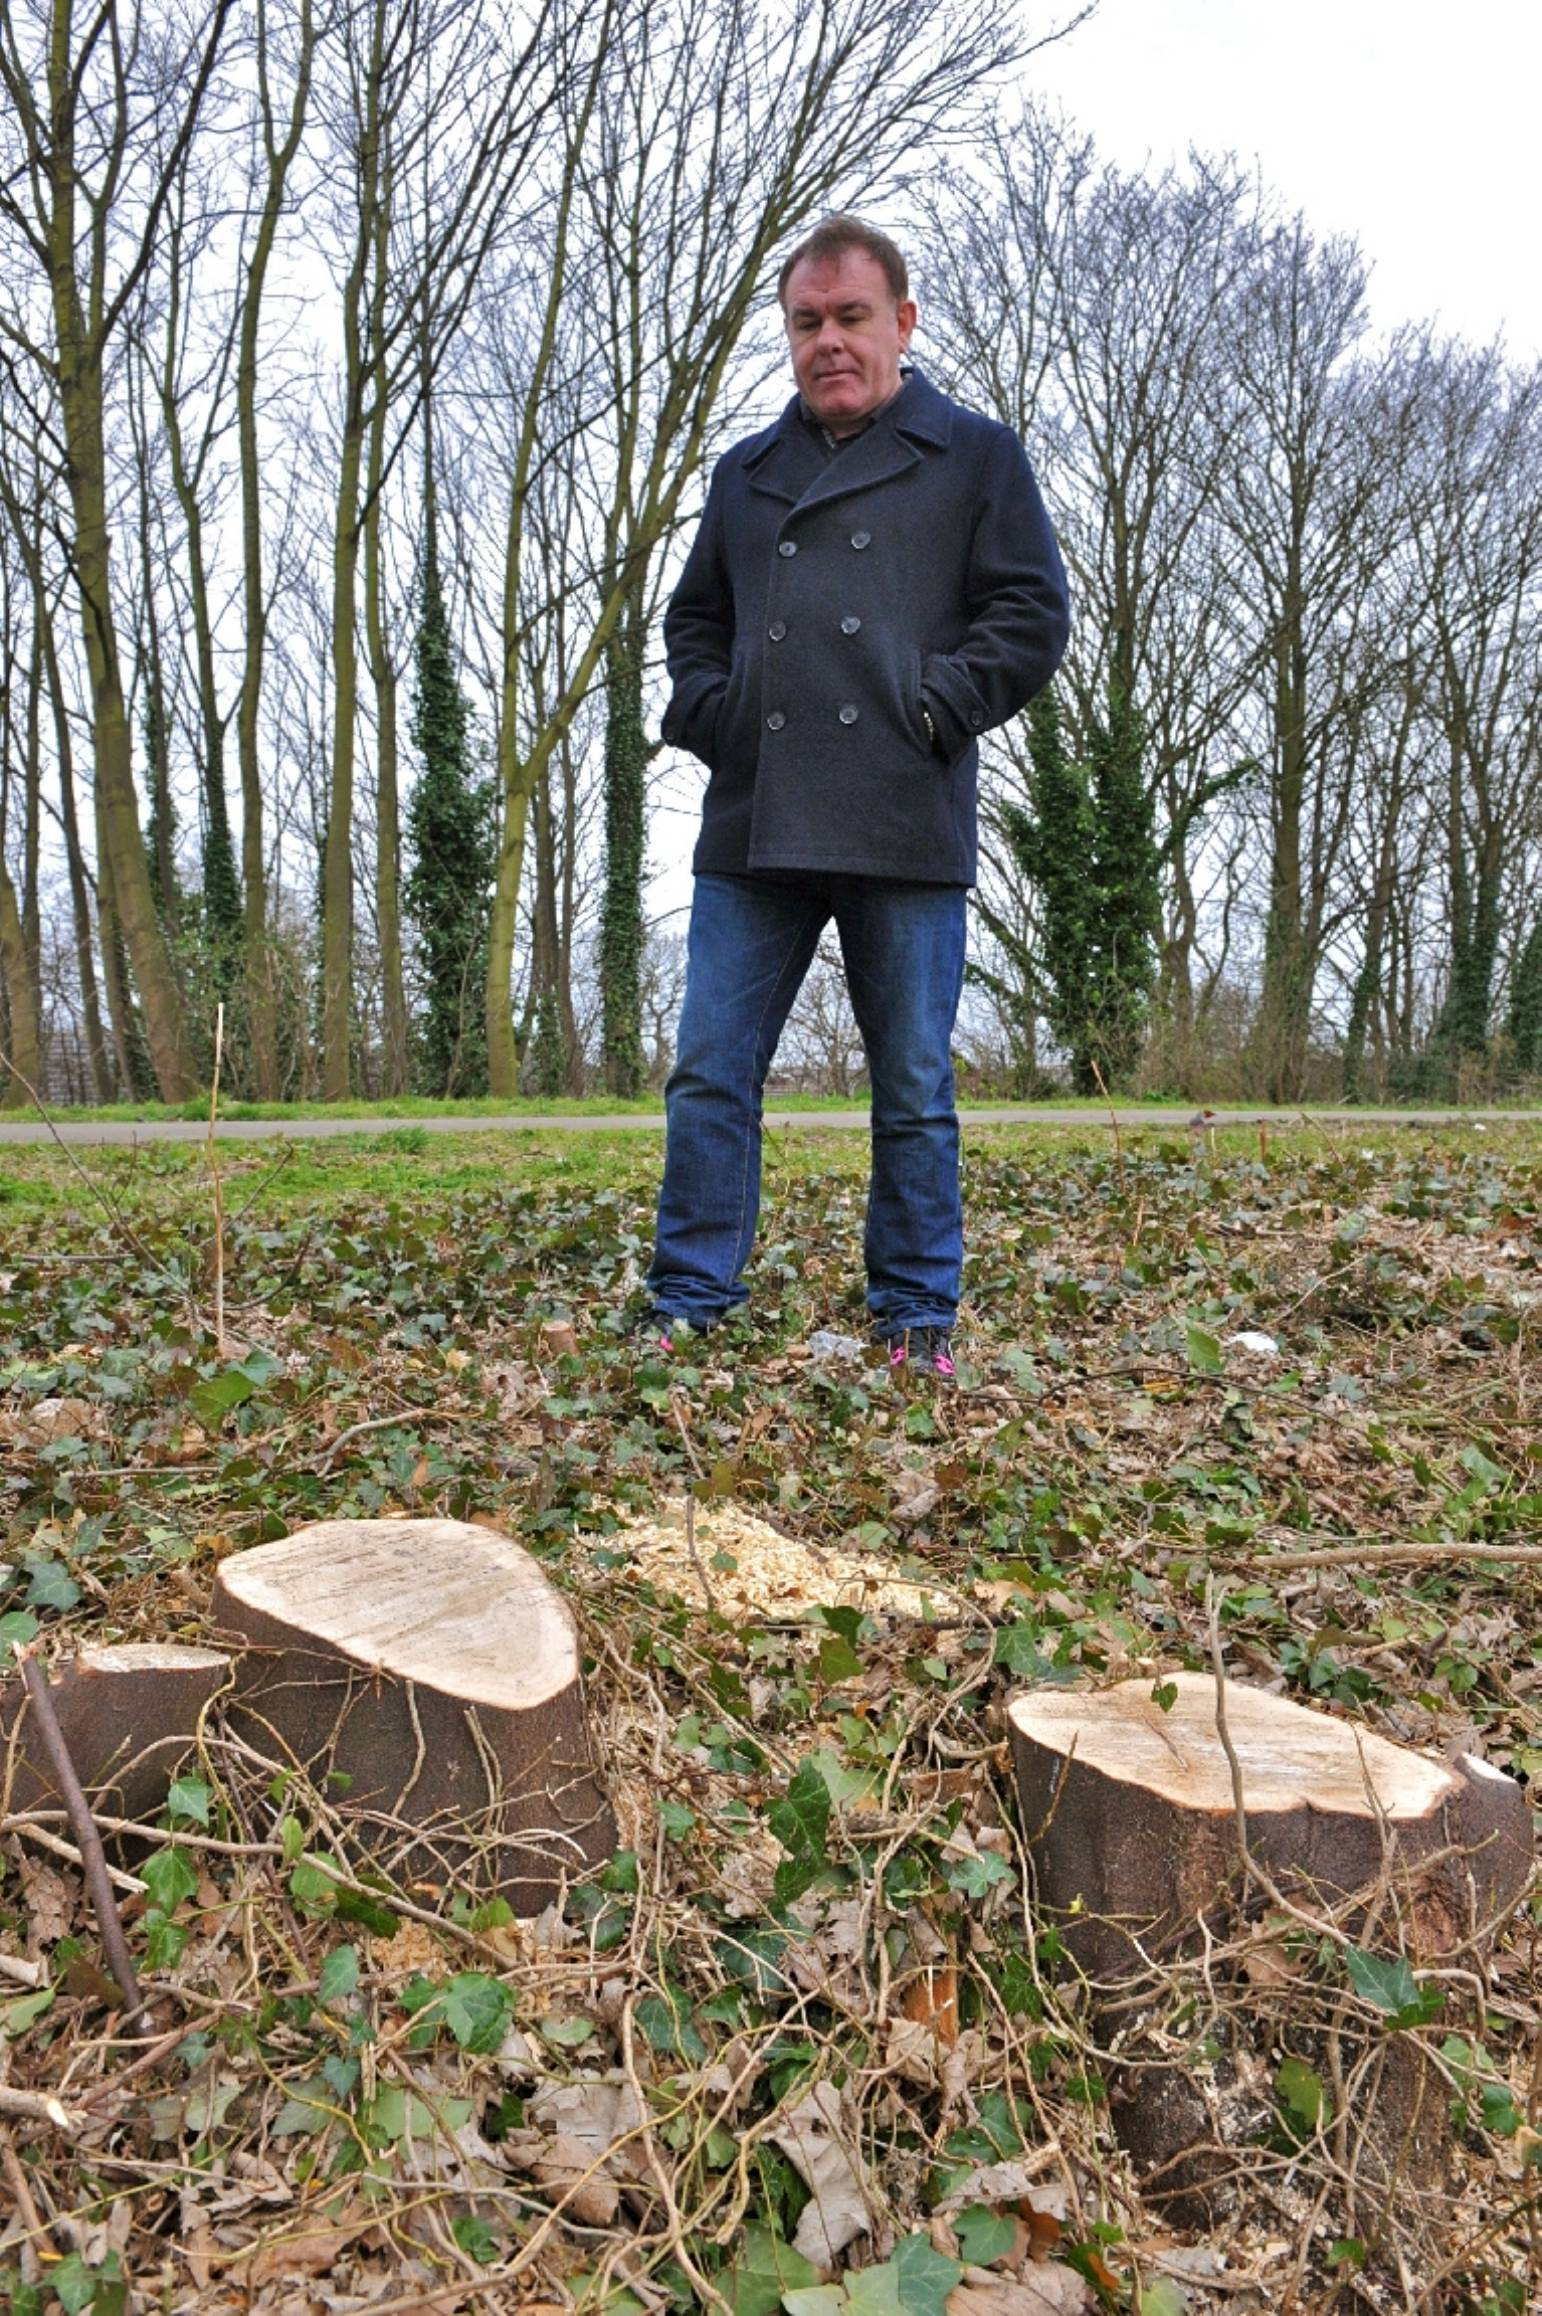 More than 20 trees have been felled on the Trans Pennine Trail